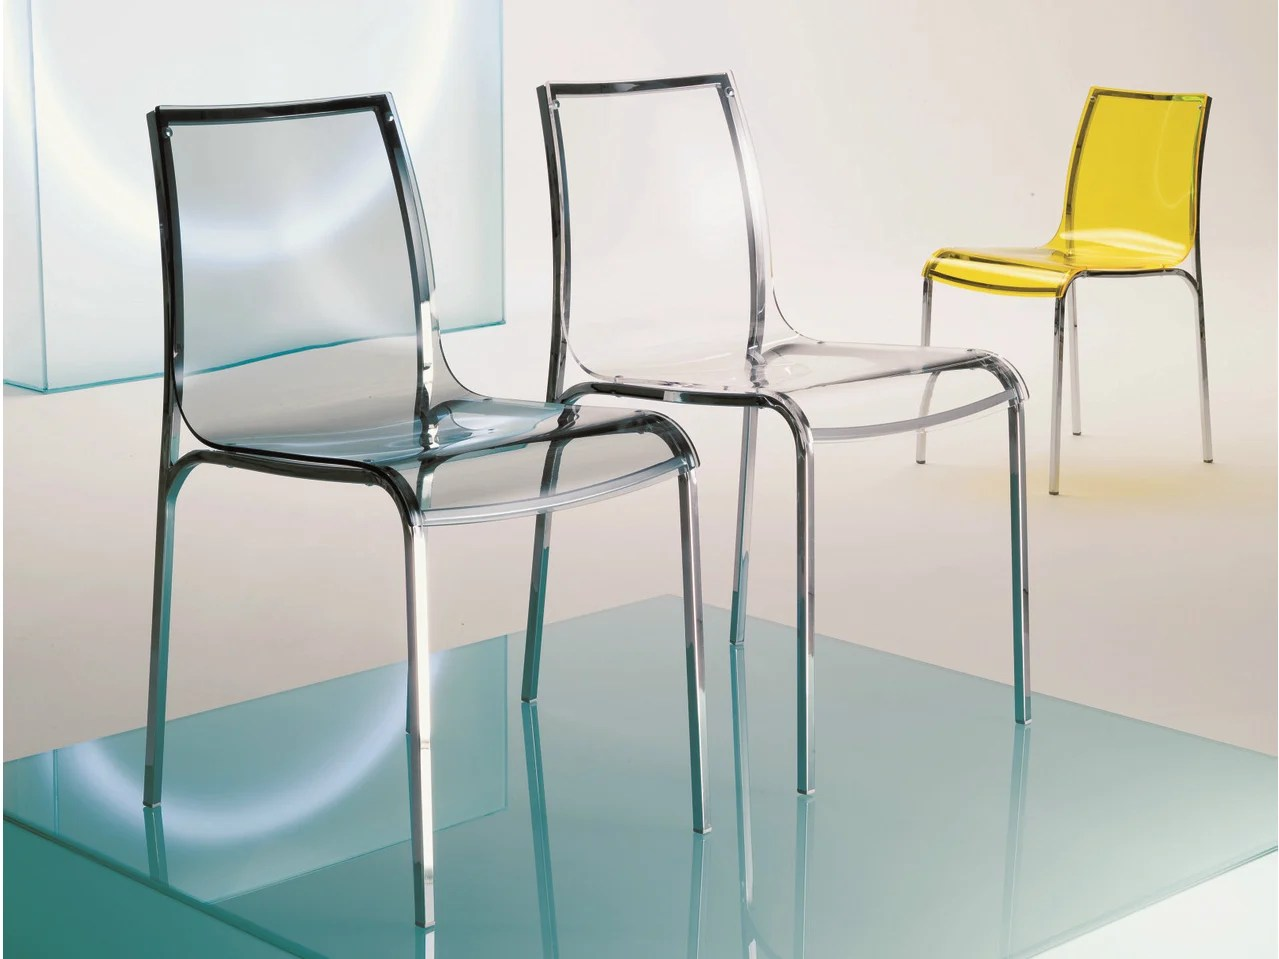 Acrylic Glass Chair Yoga By Bontempi Casa Design Daniele